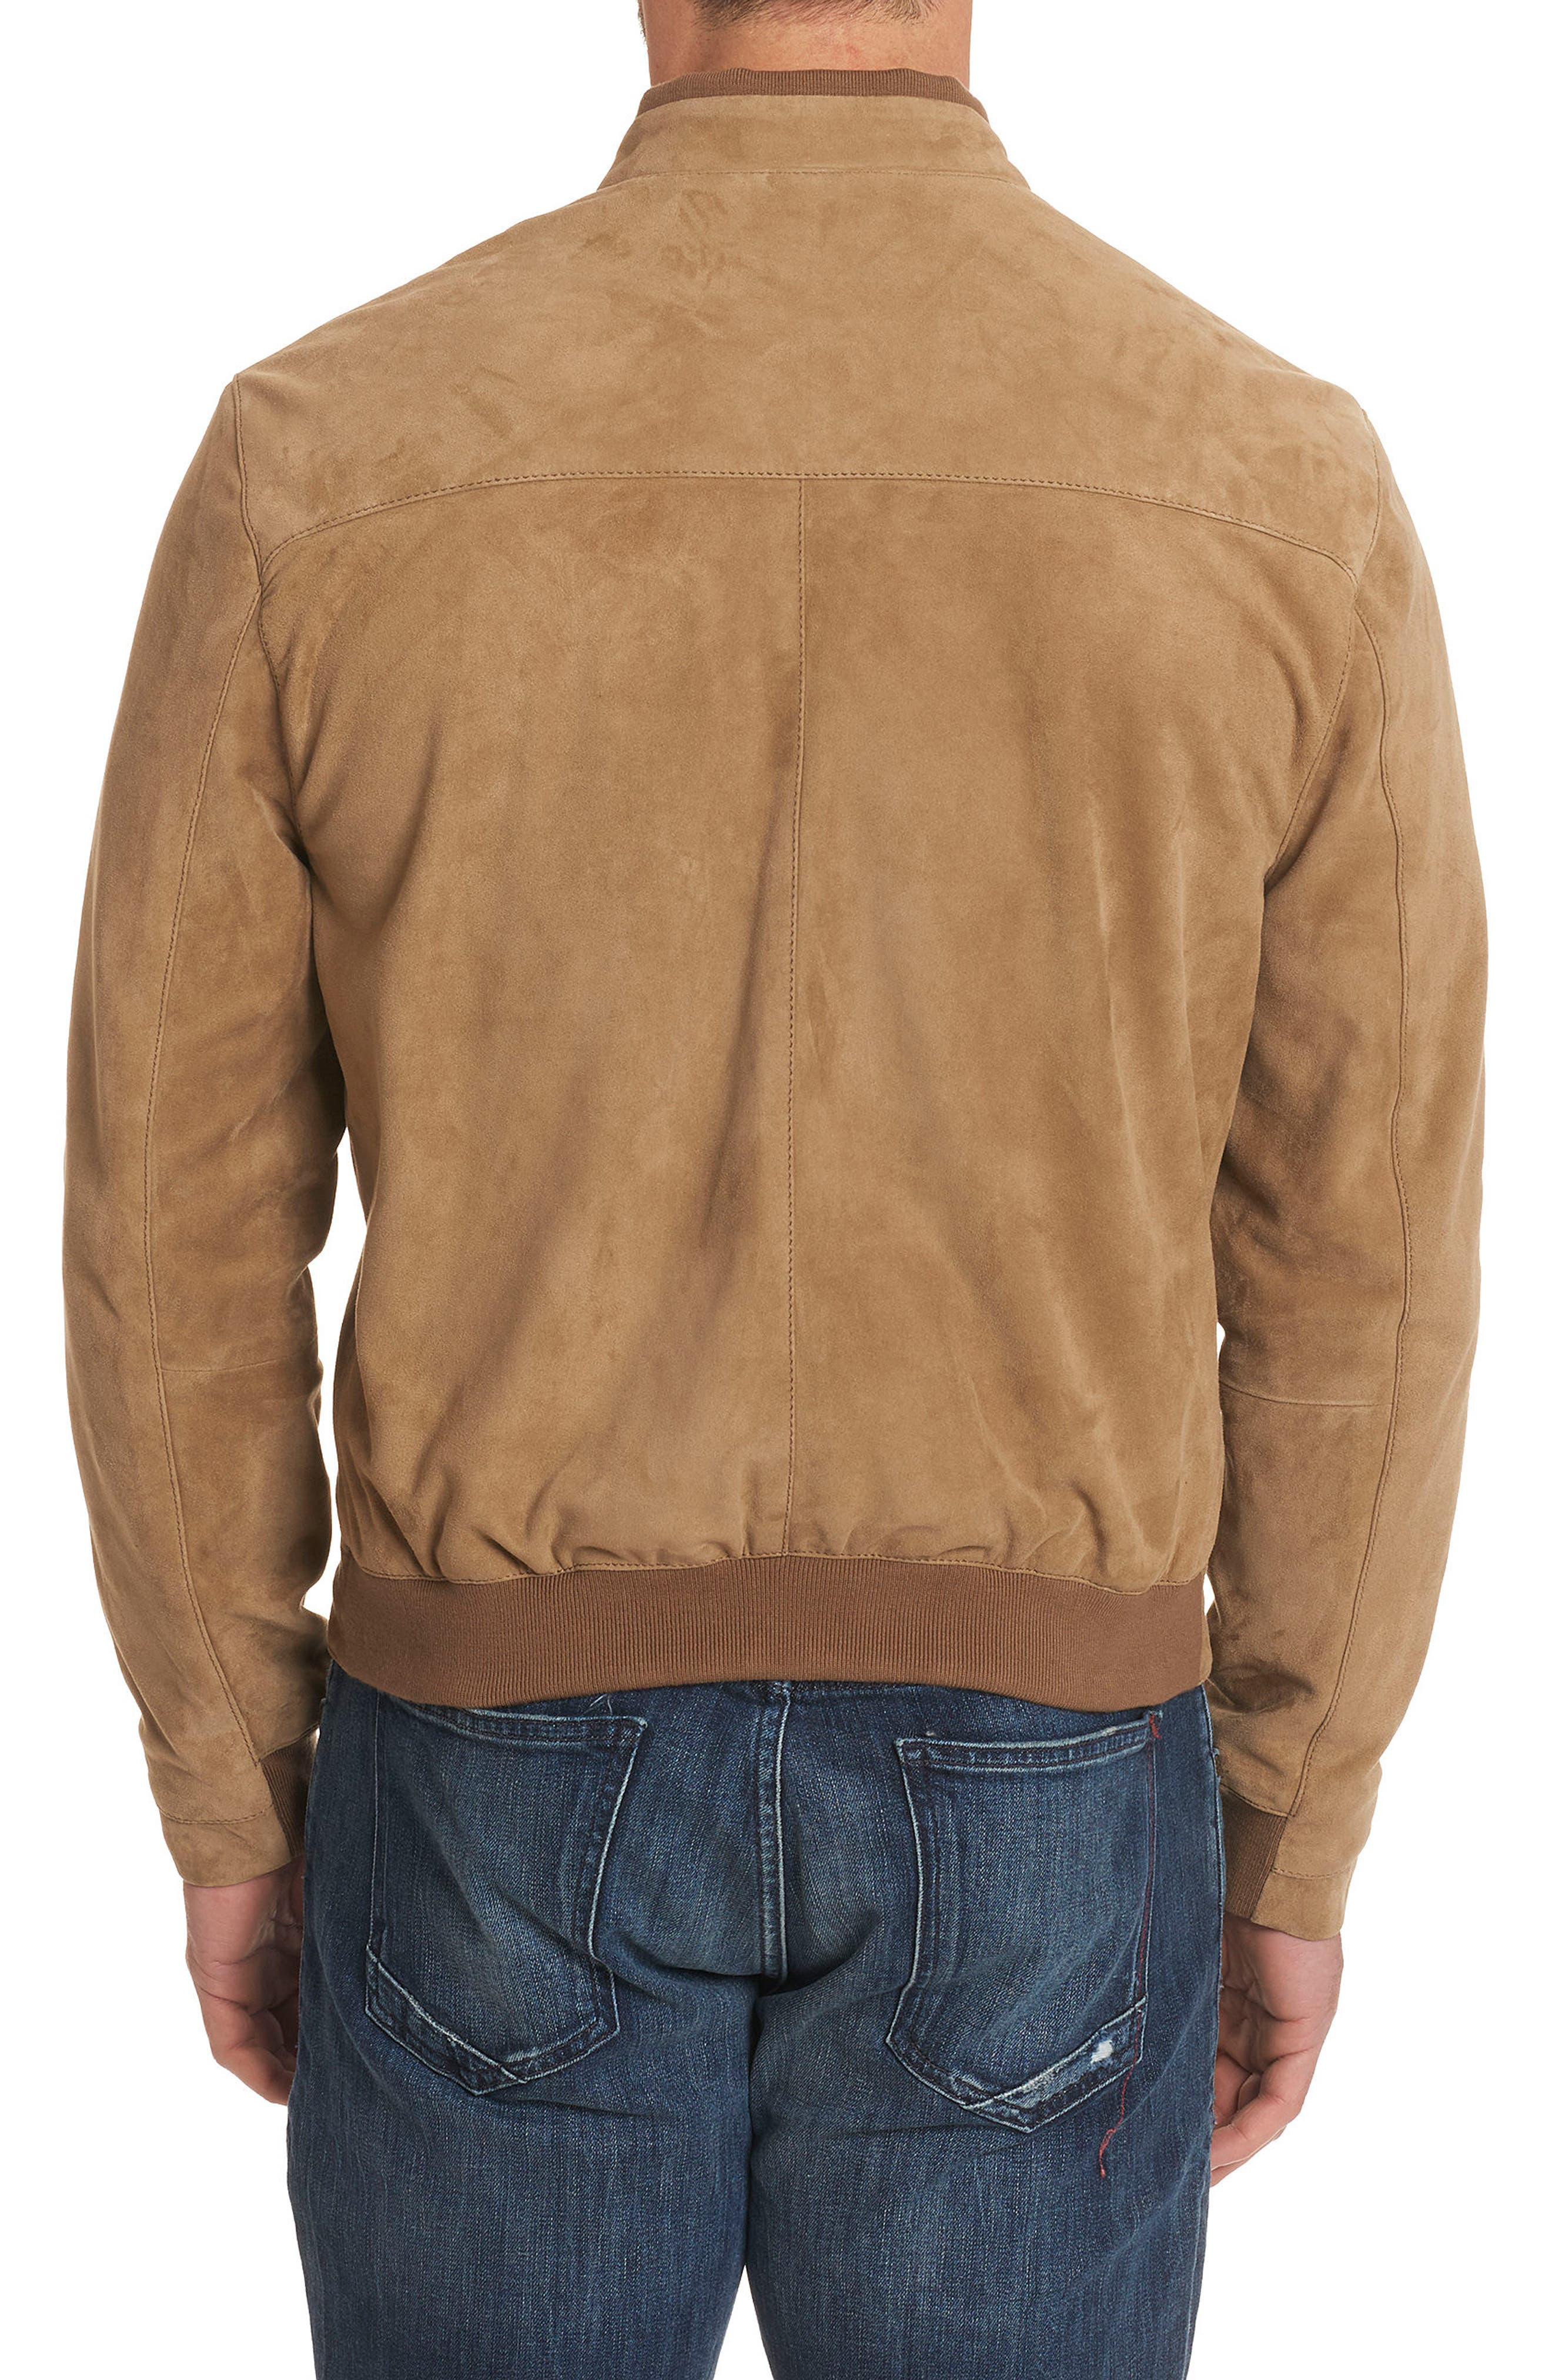 Ramos Suede Bomber Jacket,                             Alternate thumbnail 2, color,                             Tan